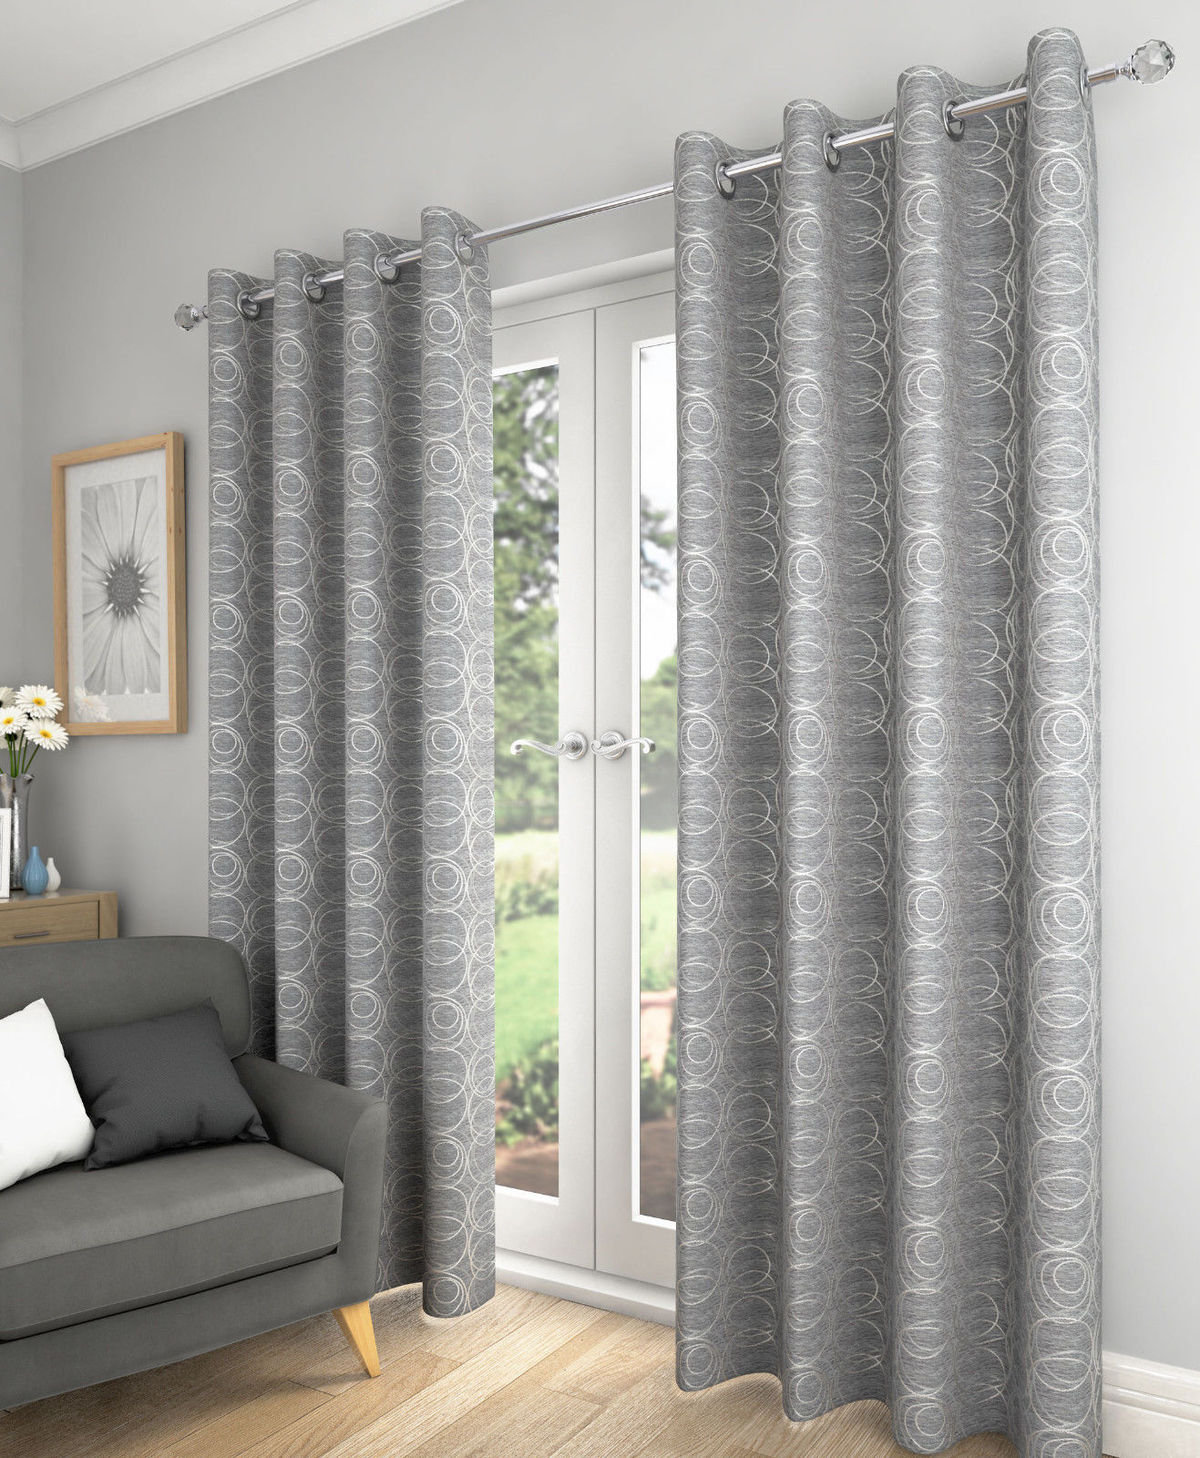 Metallic-Style Swirl Black Silver Lined 66 X 72-168CM X 183CM Ring TOP CURTAINS